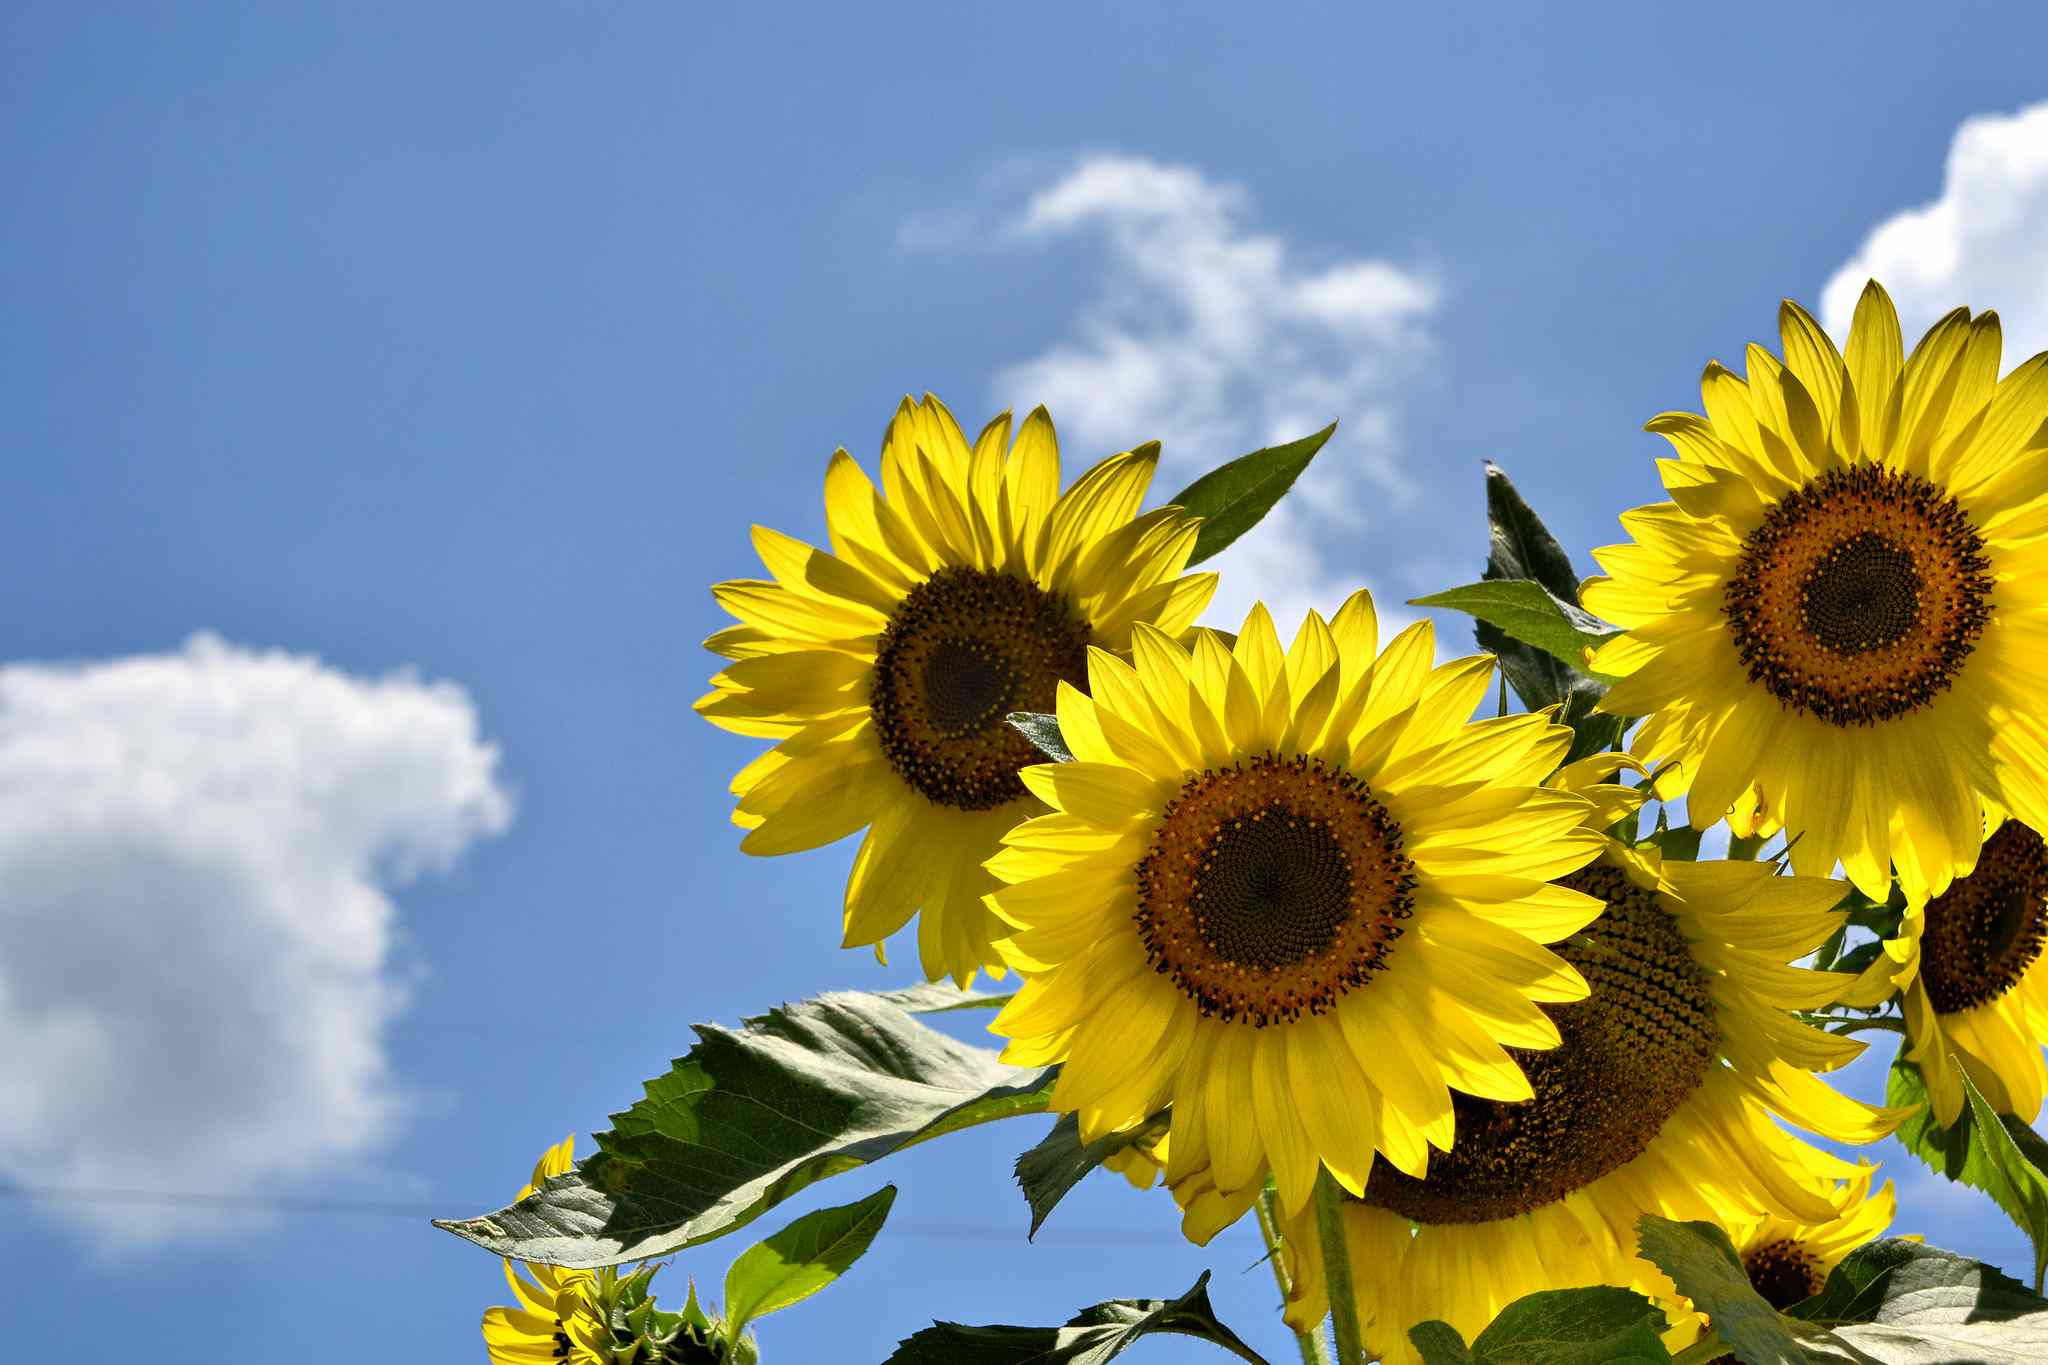 Sunflowers blooming against a blue sky